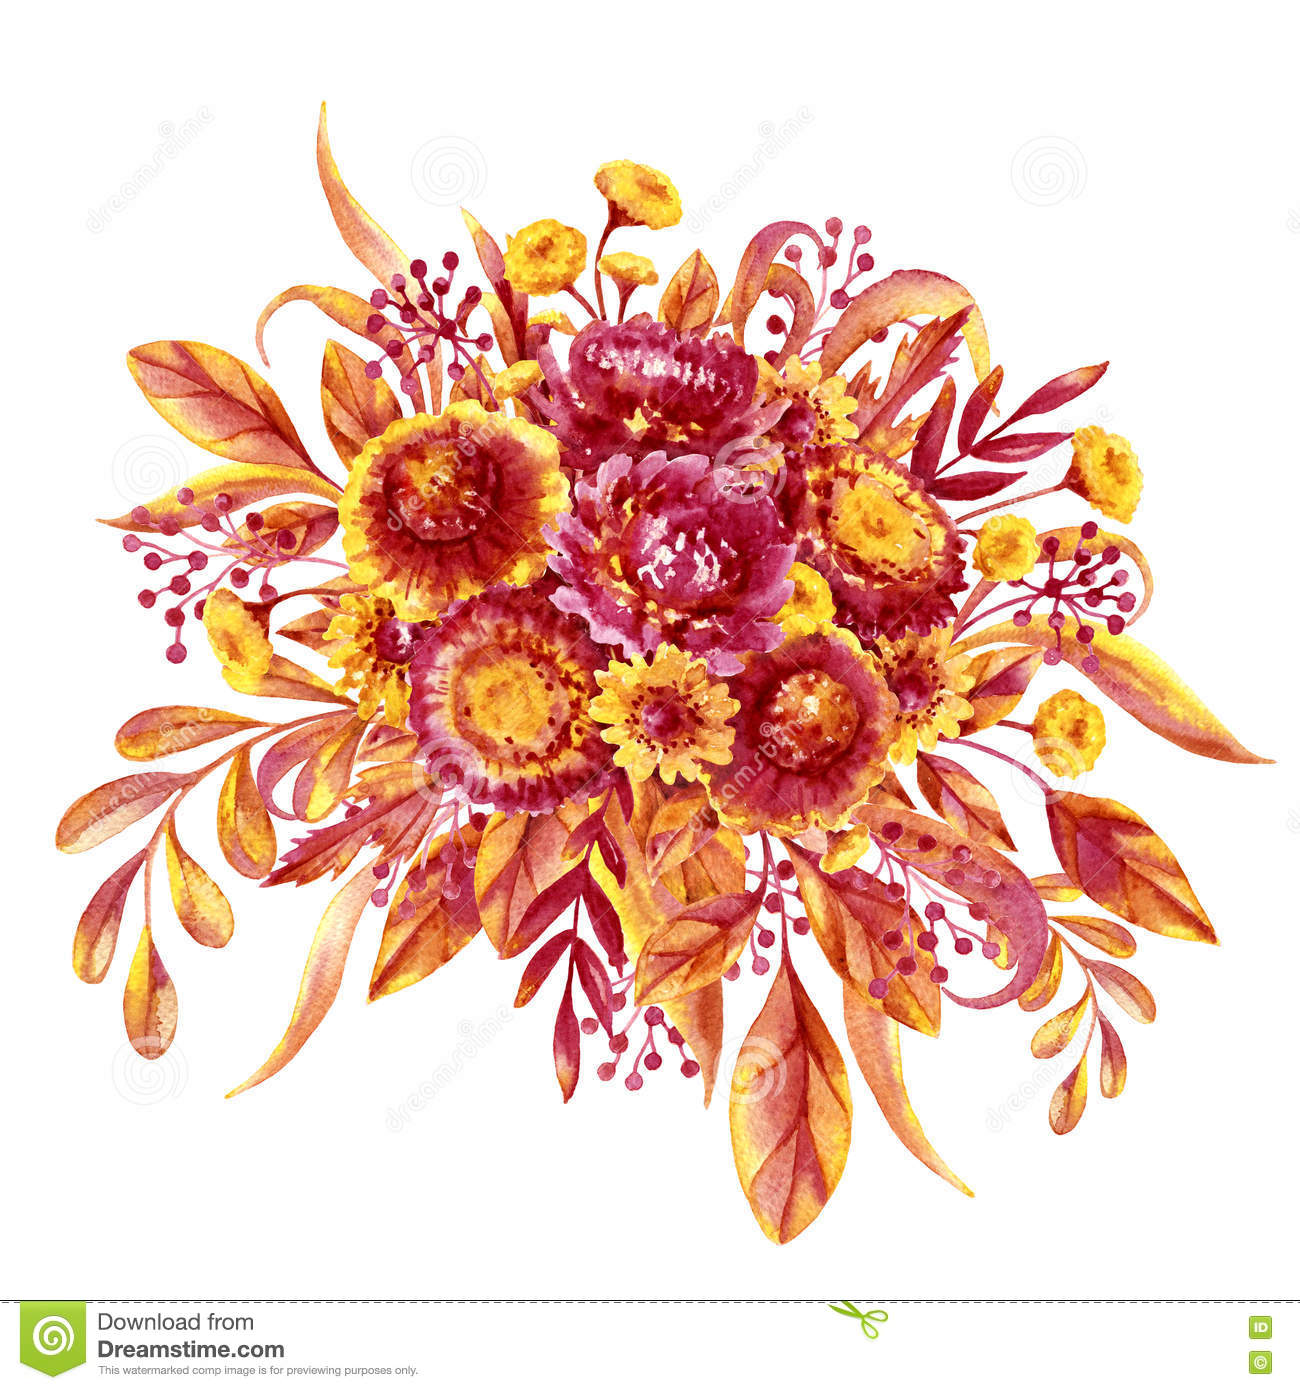 Fading Autumn Flowers Stock Illustrations 22 Fading Autumn Flowers Stock Illustrations Vectors Clipart Dreamstime